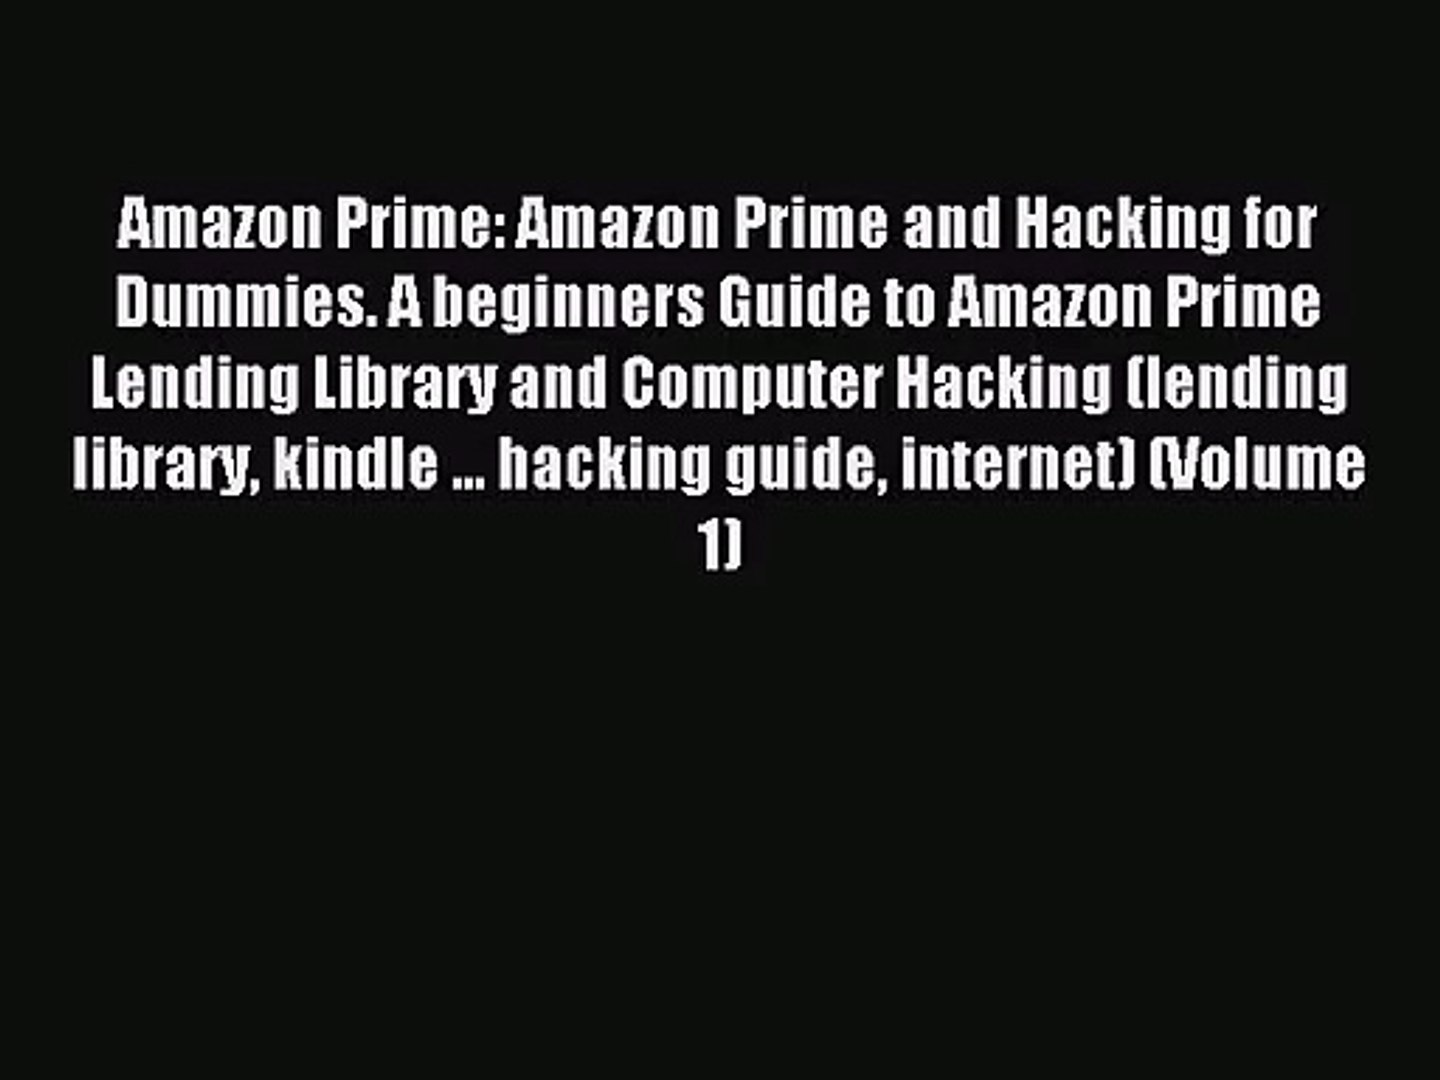 d518a7e7d7c4 [PDF Download] Amazon Prime: Amazon Prime and Hacking for Dummies. A  beginners Guide to Amazon